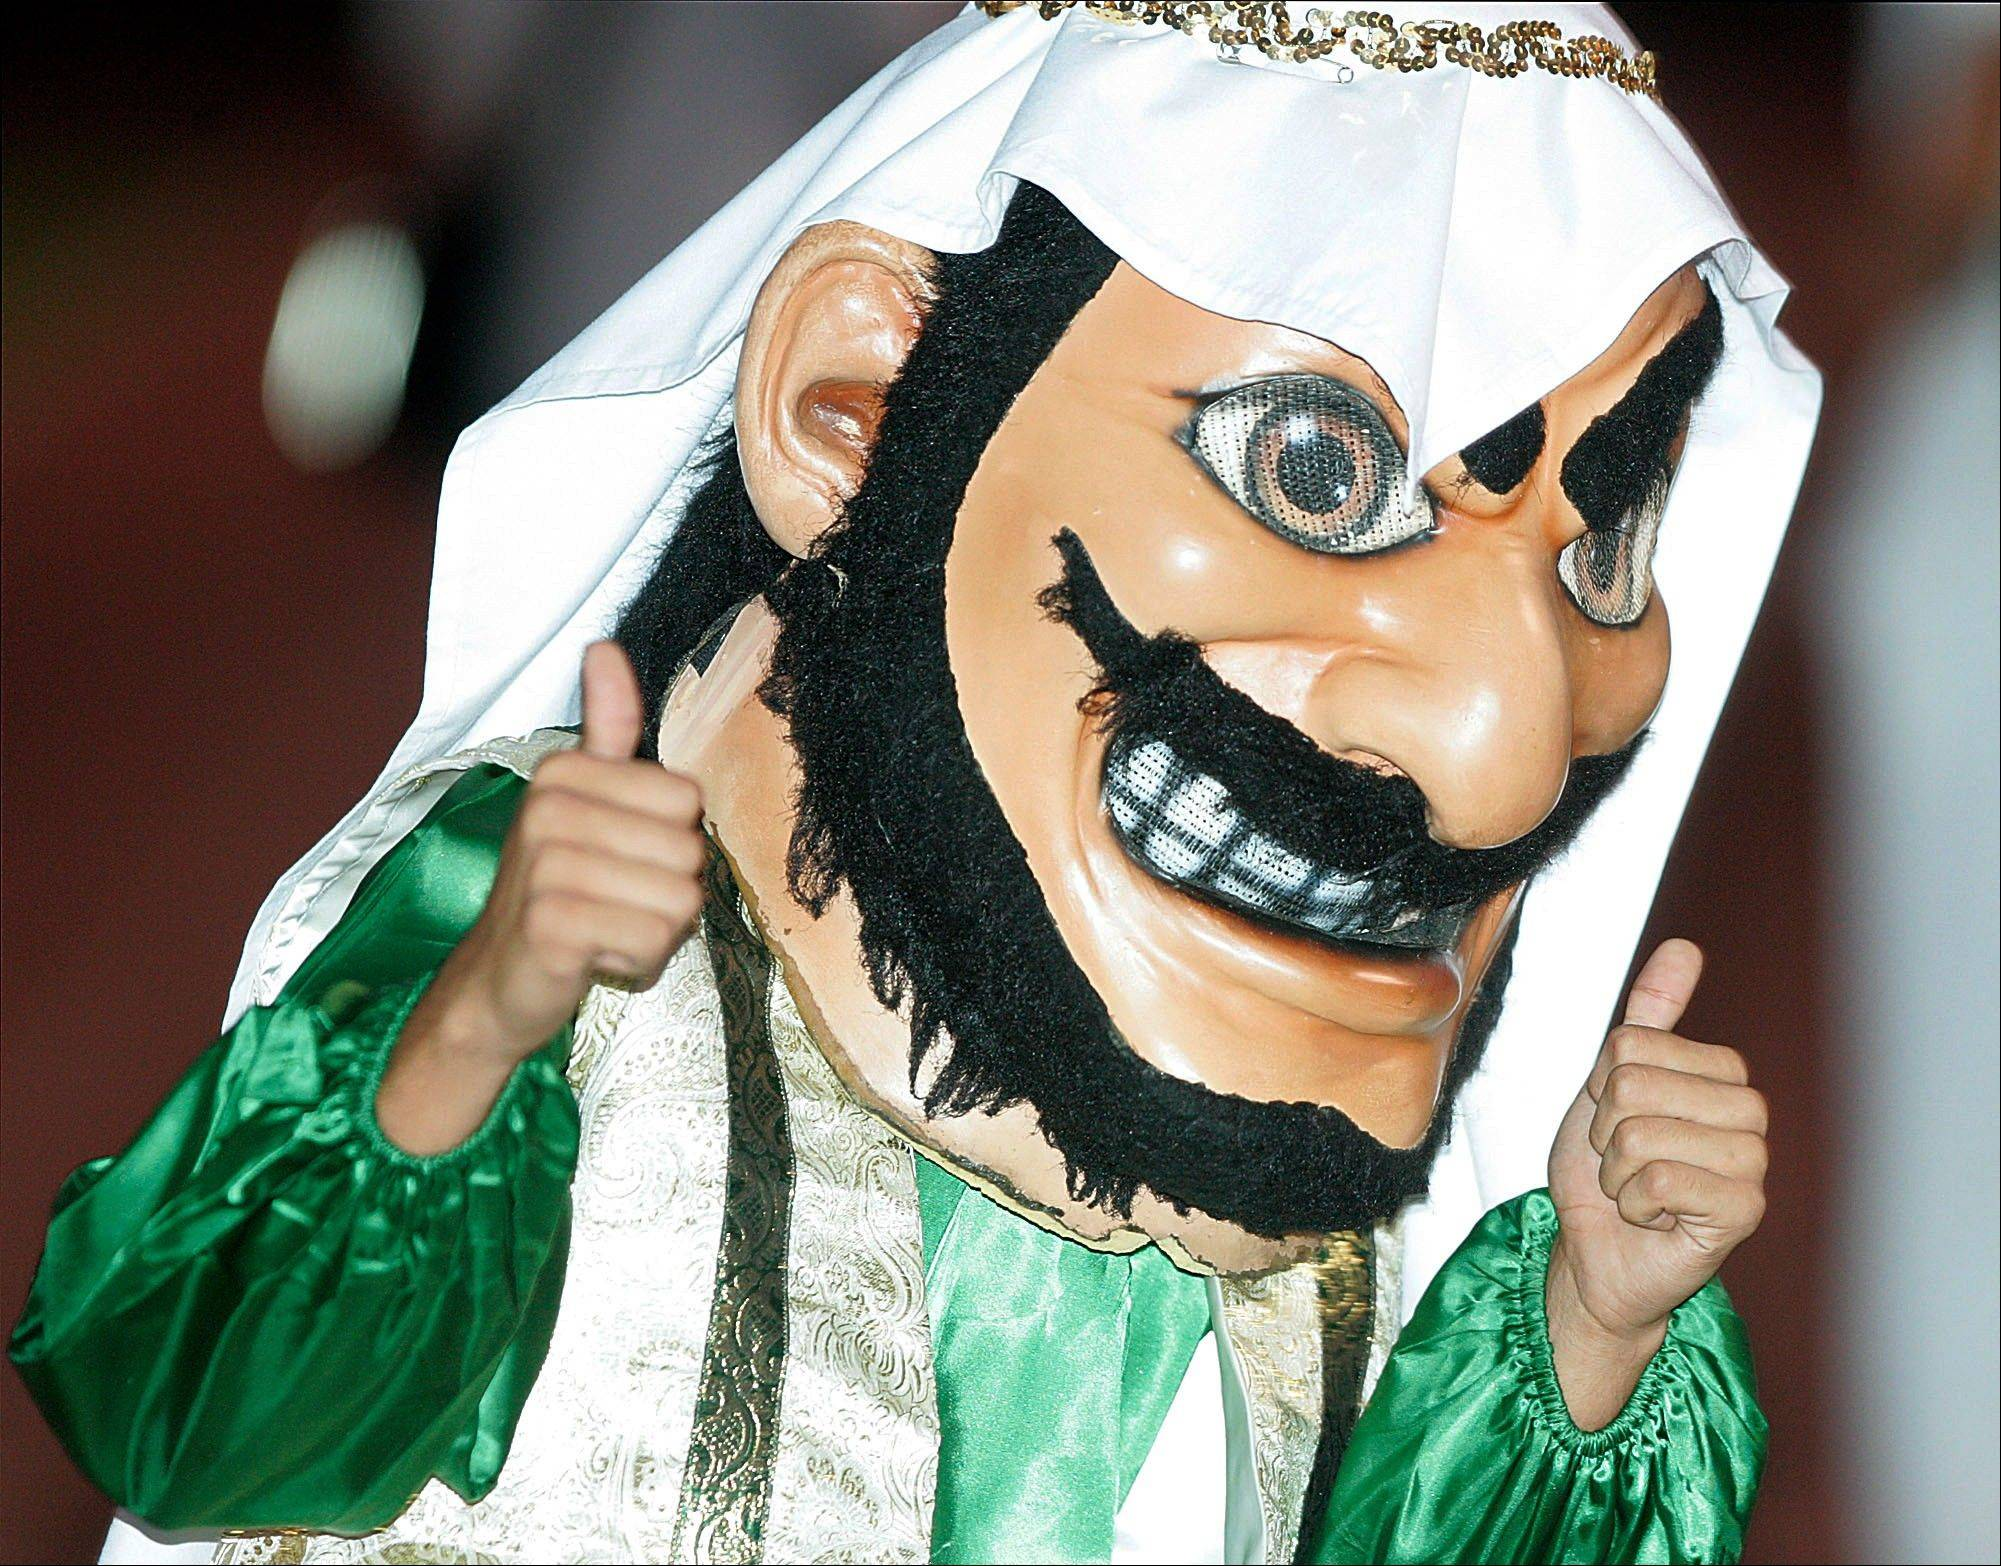 In this 2010 photo, Coachella Valley High School�s mascot, �Arab,� gives the thumbs up during a game in Thermal, Calif. The American-Arab Anti-Discrimination Committee is calling on the Southern California high school to get rid of its longstanding mascot that it deems offensive.